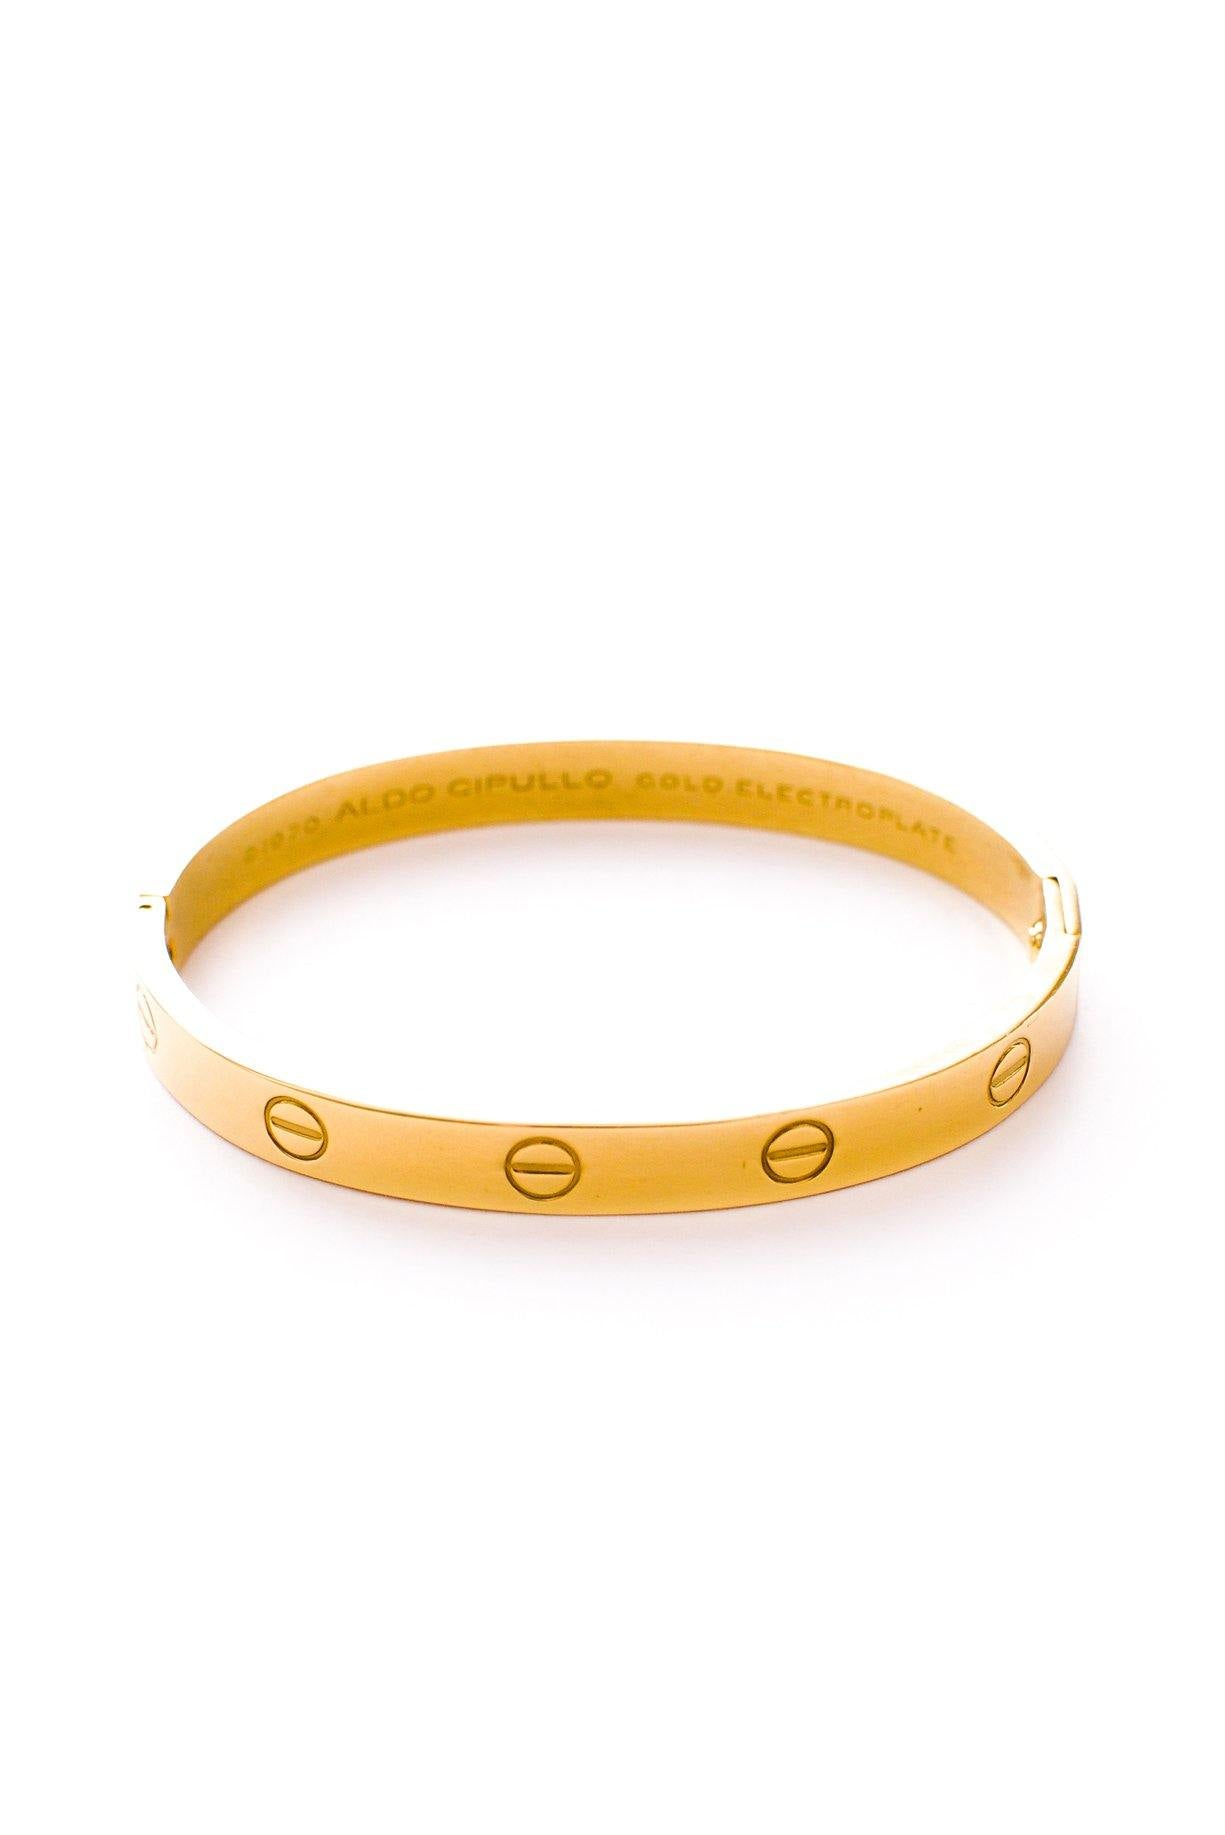 Original vintage 1970s Cartier Love bracelet by Aldo Cipullo for Charles Revson